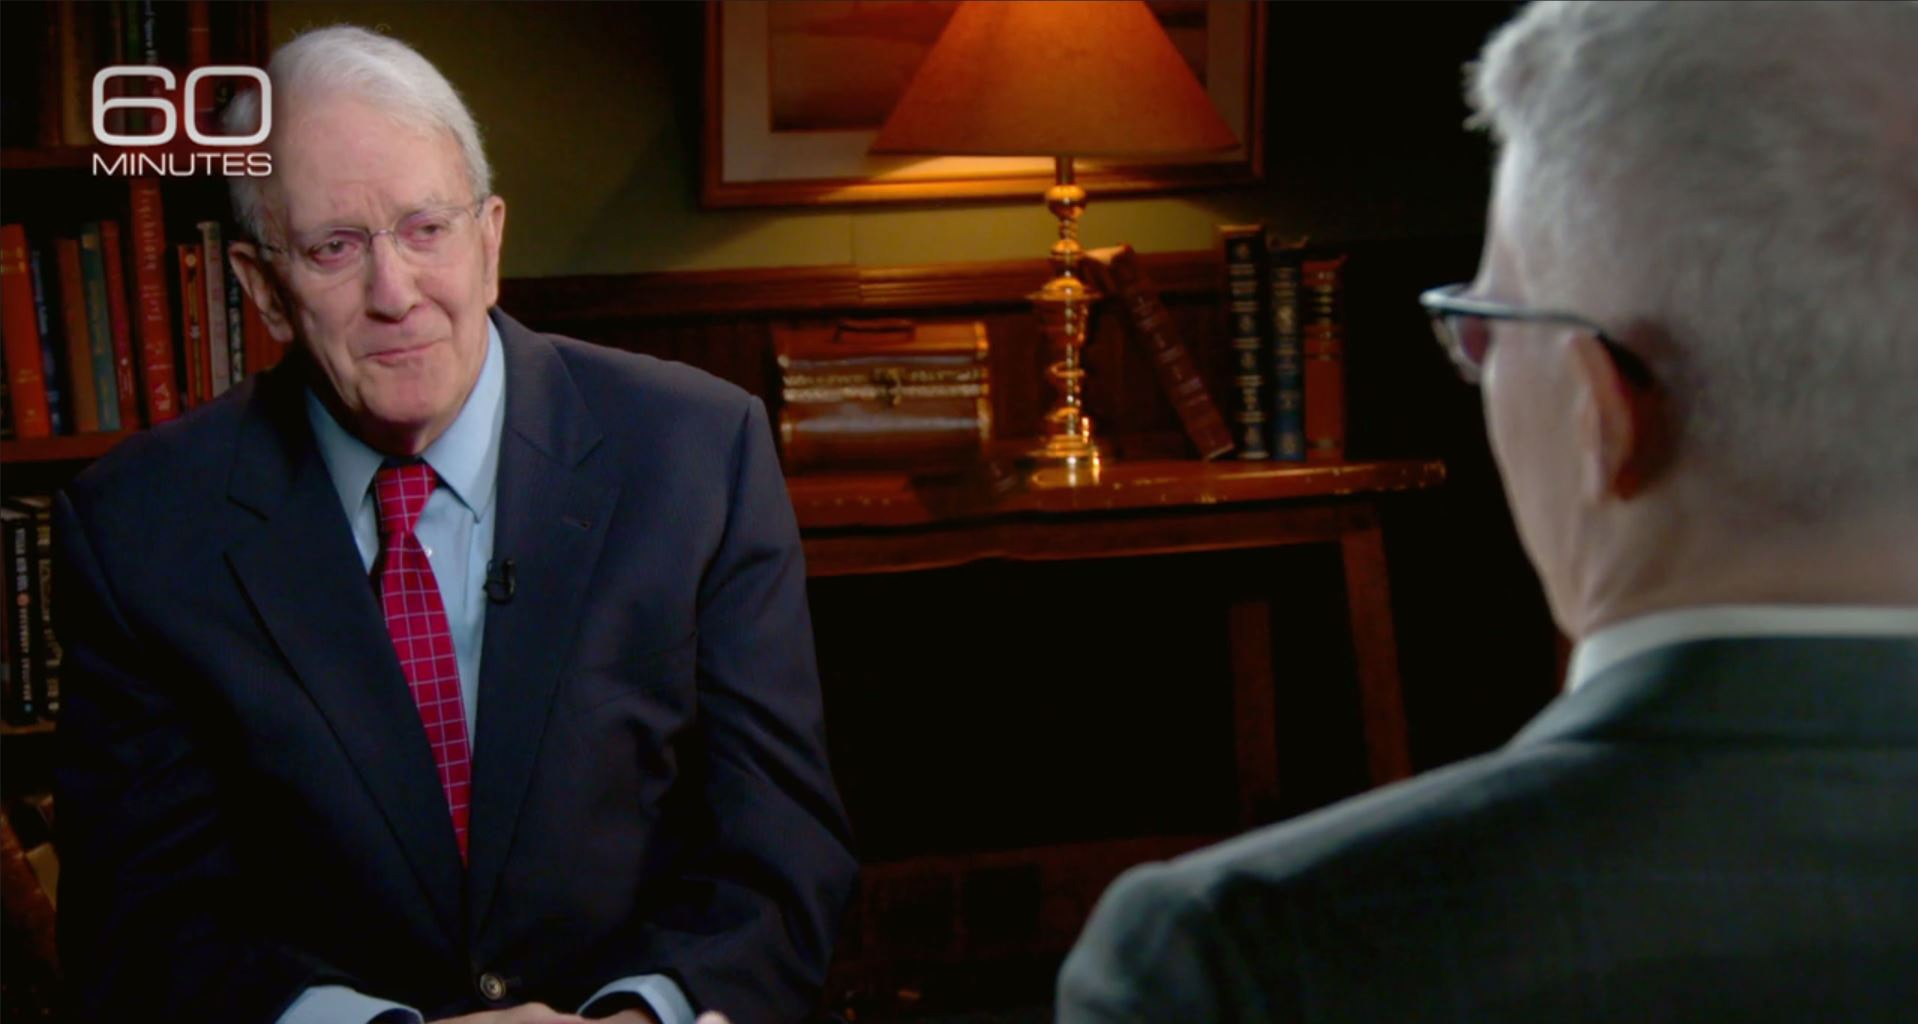 Steve Hanlon on 60 Minutes with Anderson Cooper